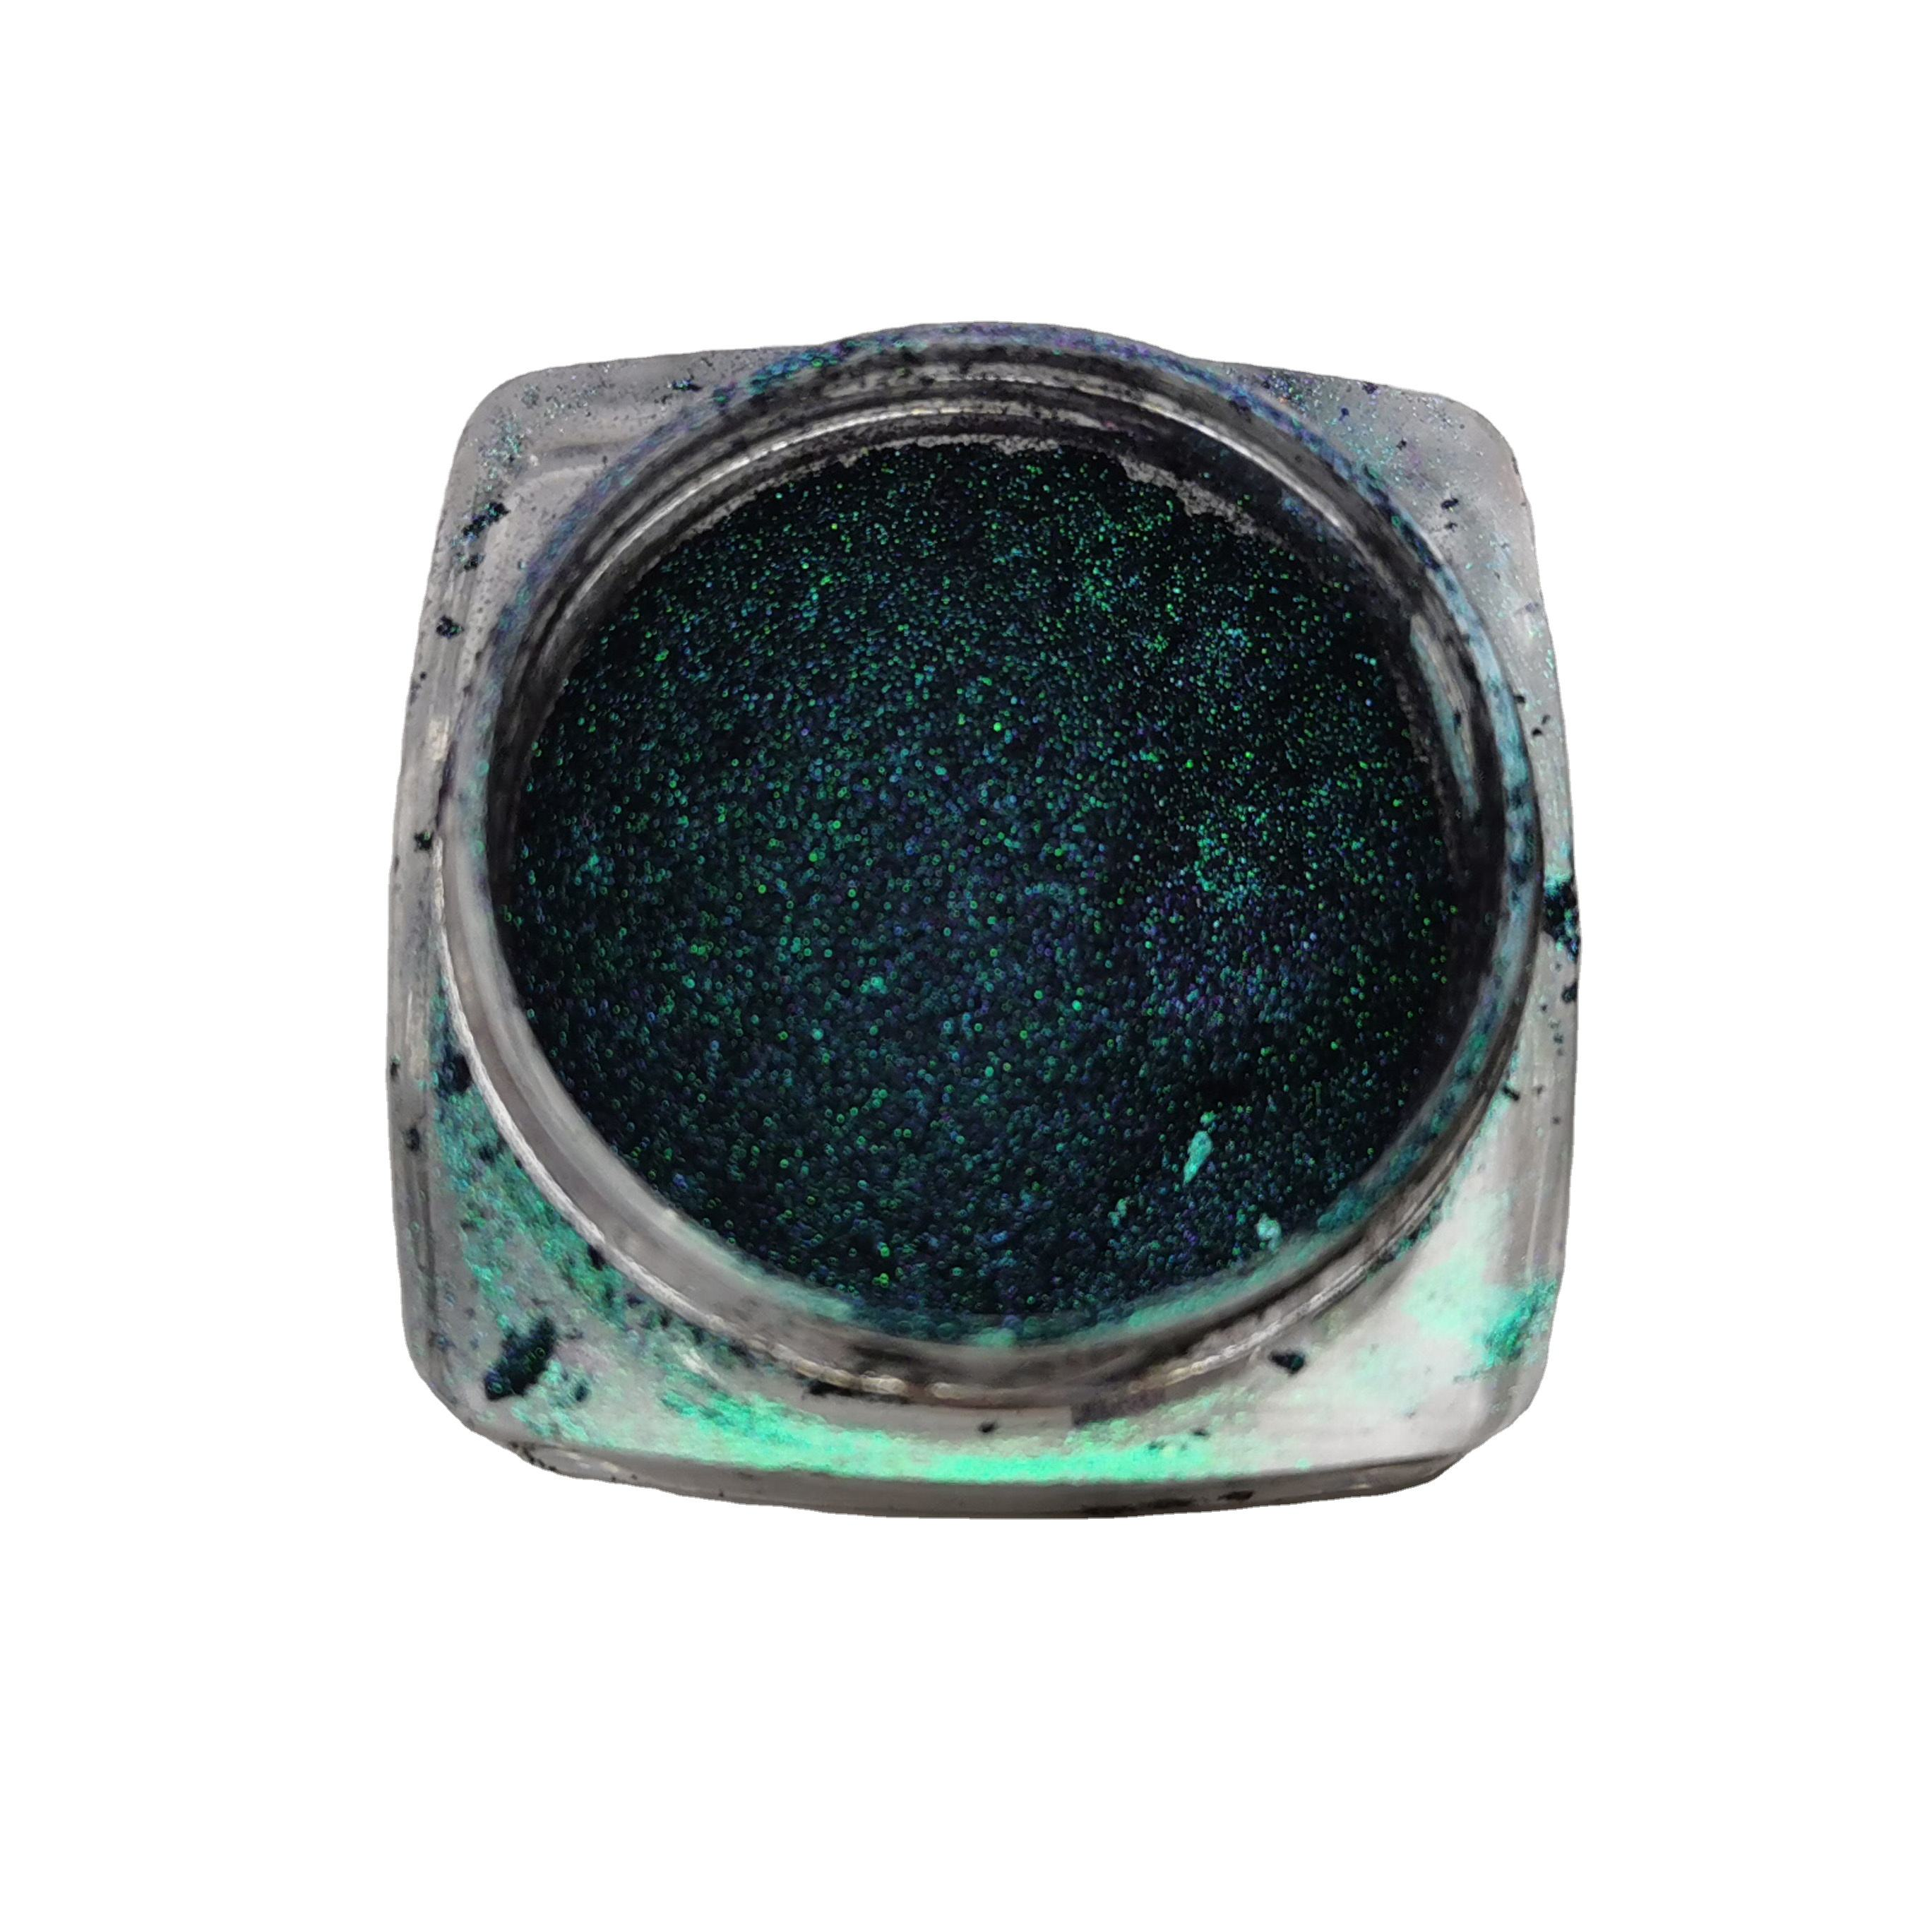 Chameleon pearl pigment flakes color shifting cosmetics glitter flake